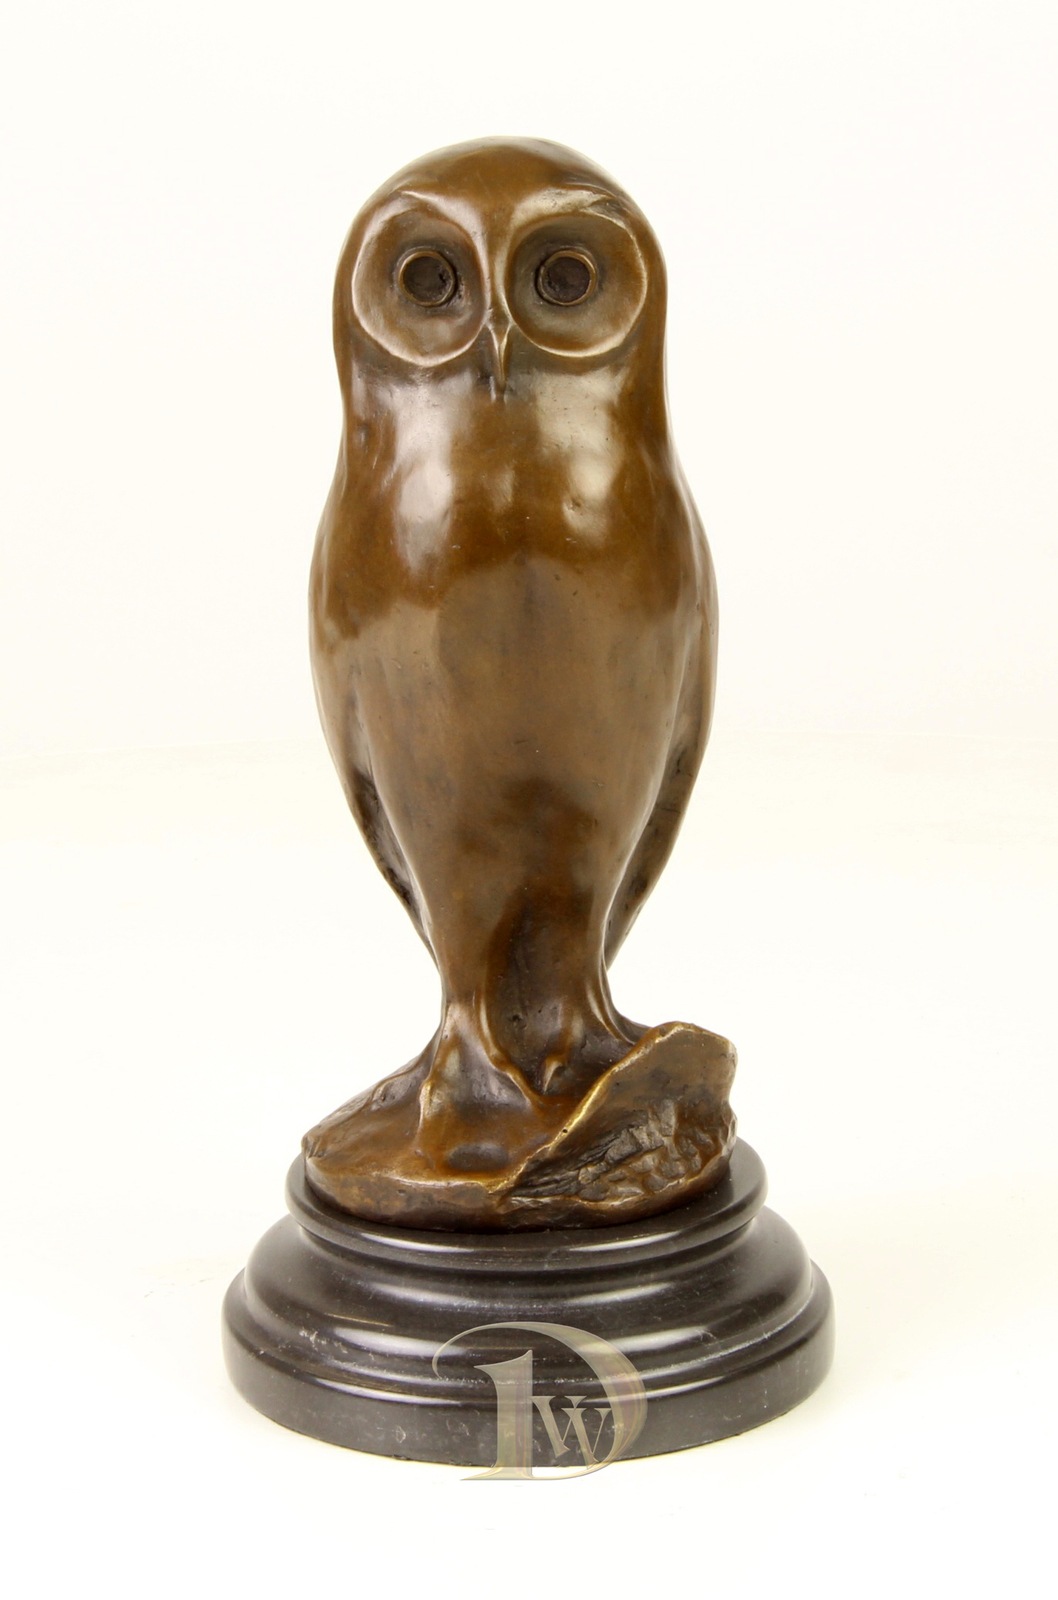 Antique Home Decor Bronze Sculpture shows Wise Owl, signed * Free Air Shipping